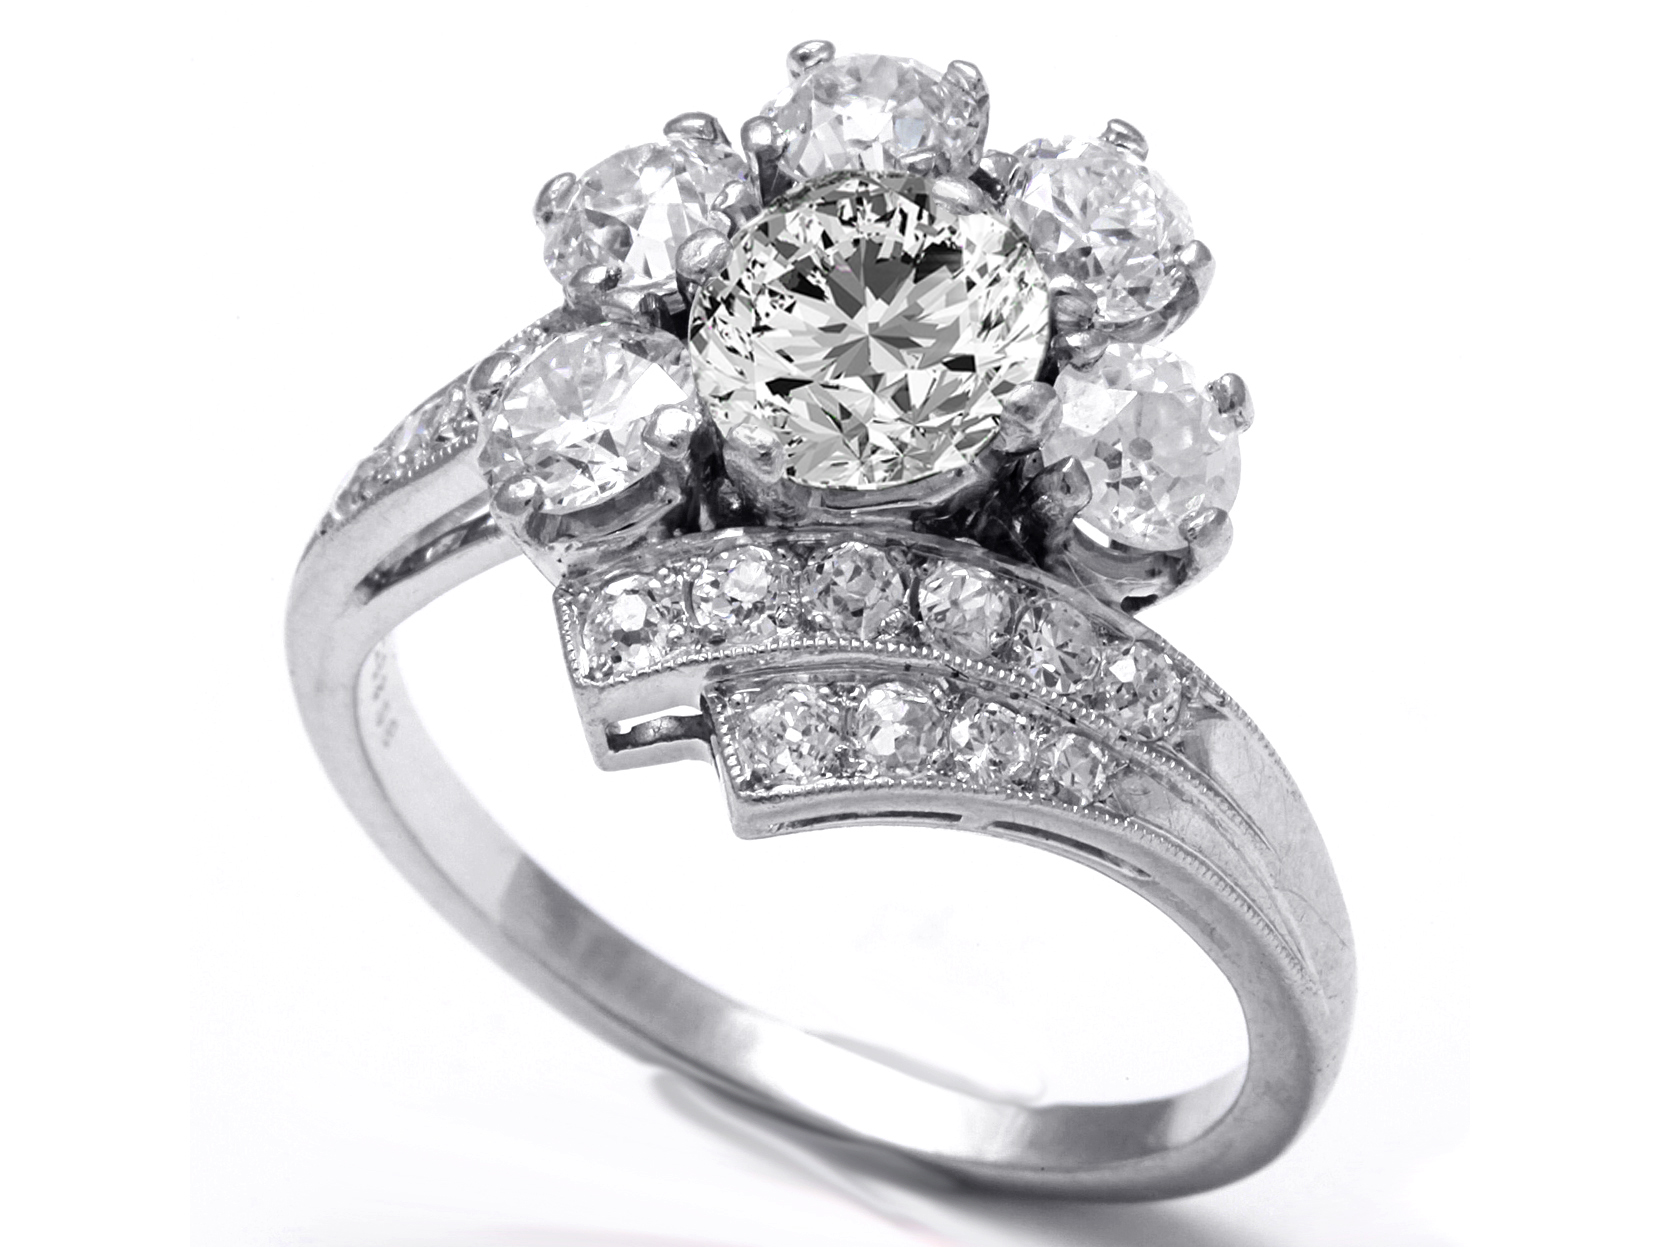 Floral Art Deco Diamond Engagement Ring 1.52 TCW in 14K White Gold